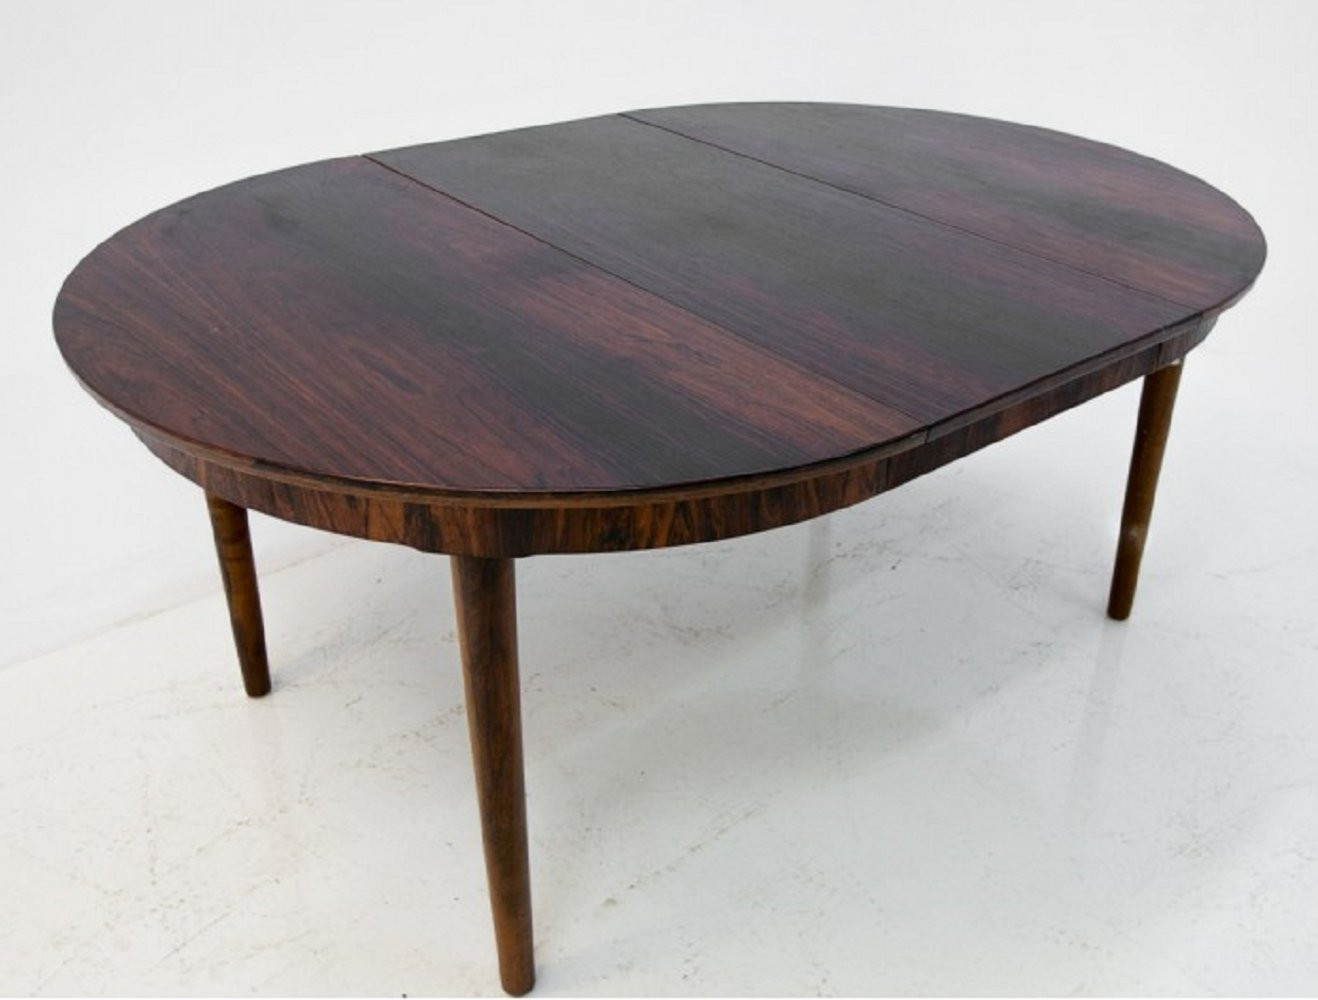 - Round Danish Design Folding Dining Table In Rosewood, 1960s #129262